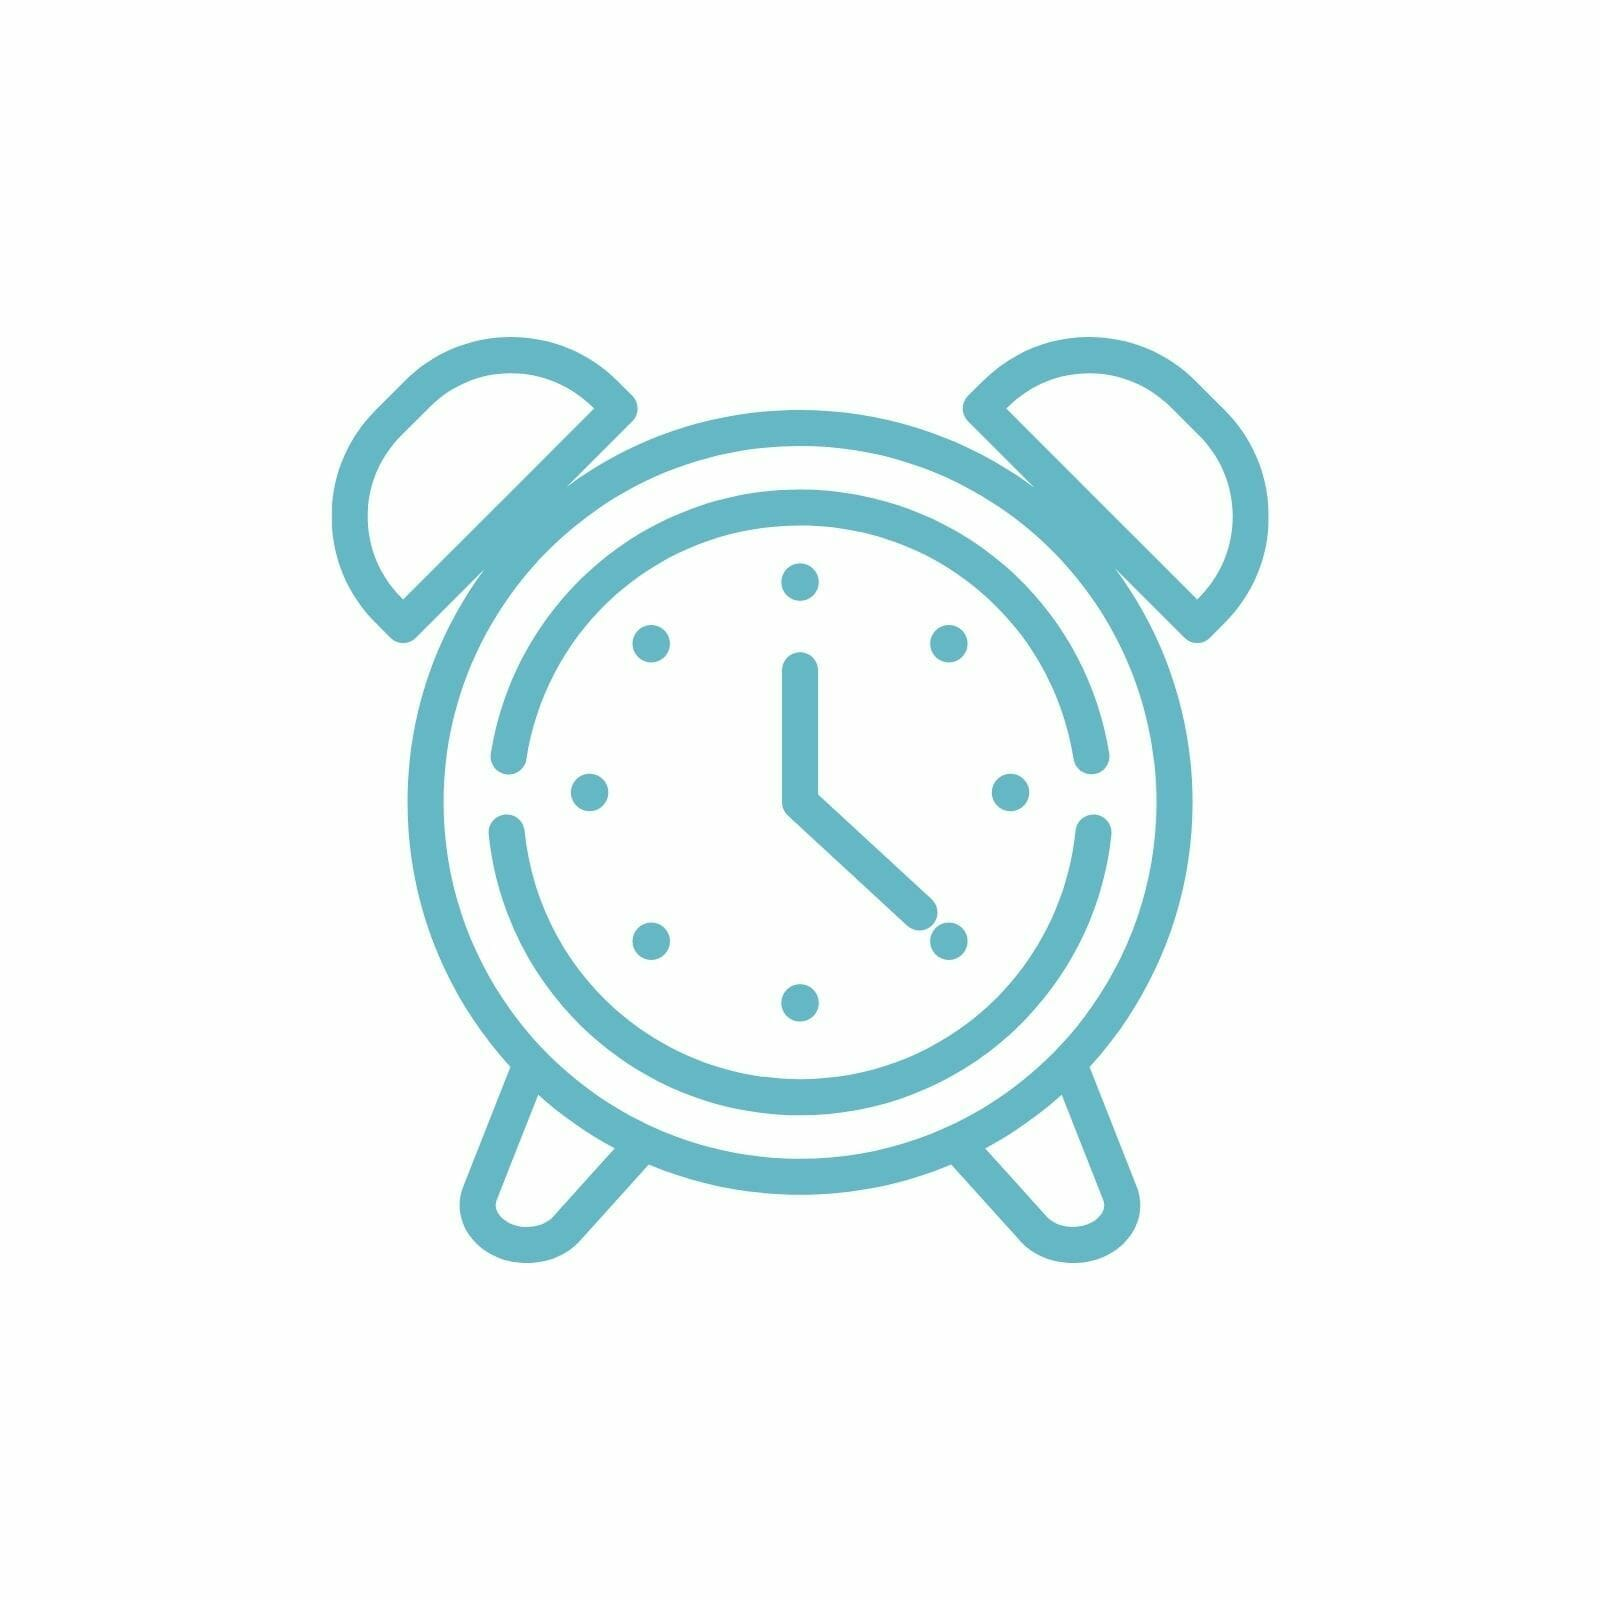 Graphic of an alarm clock.